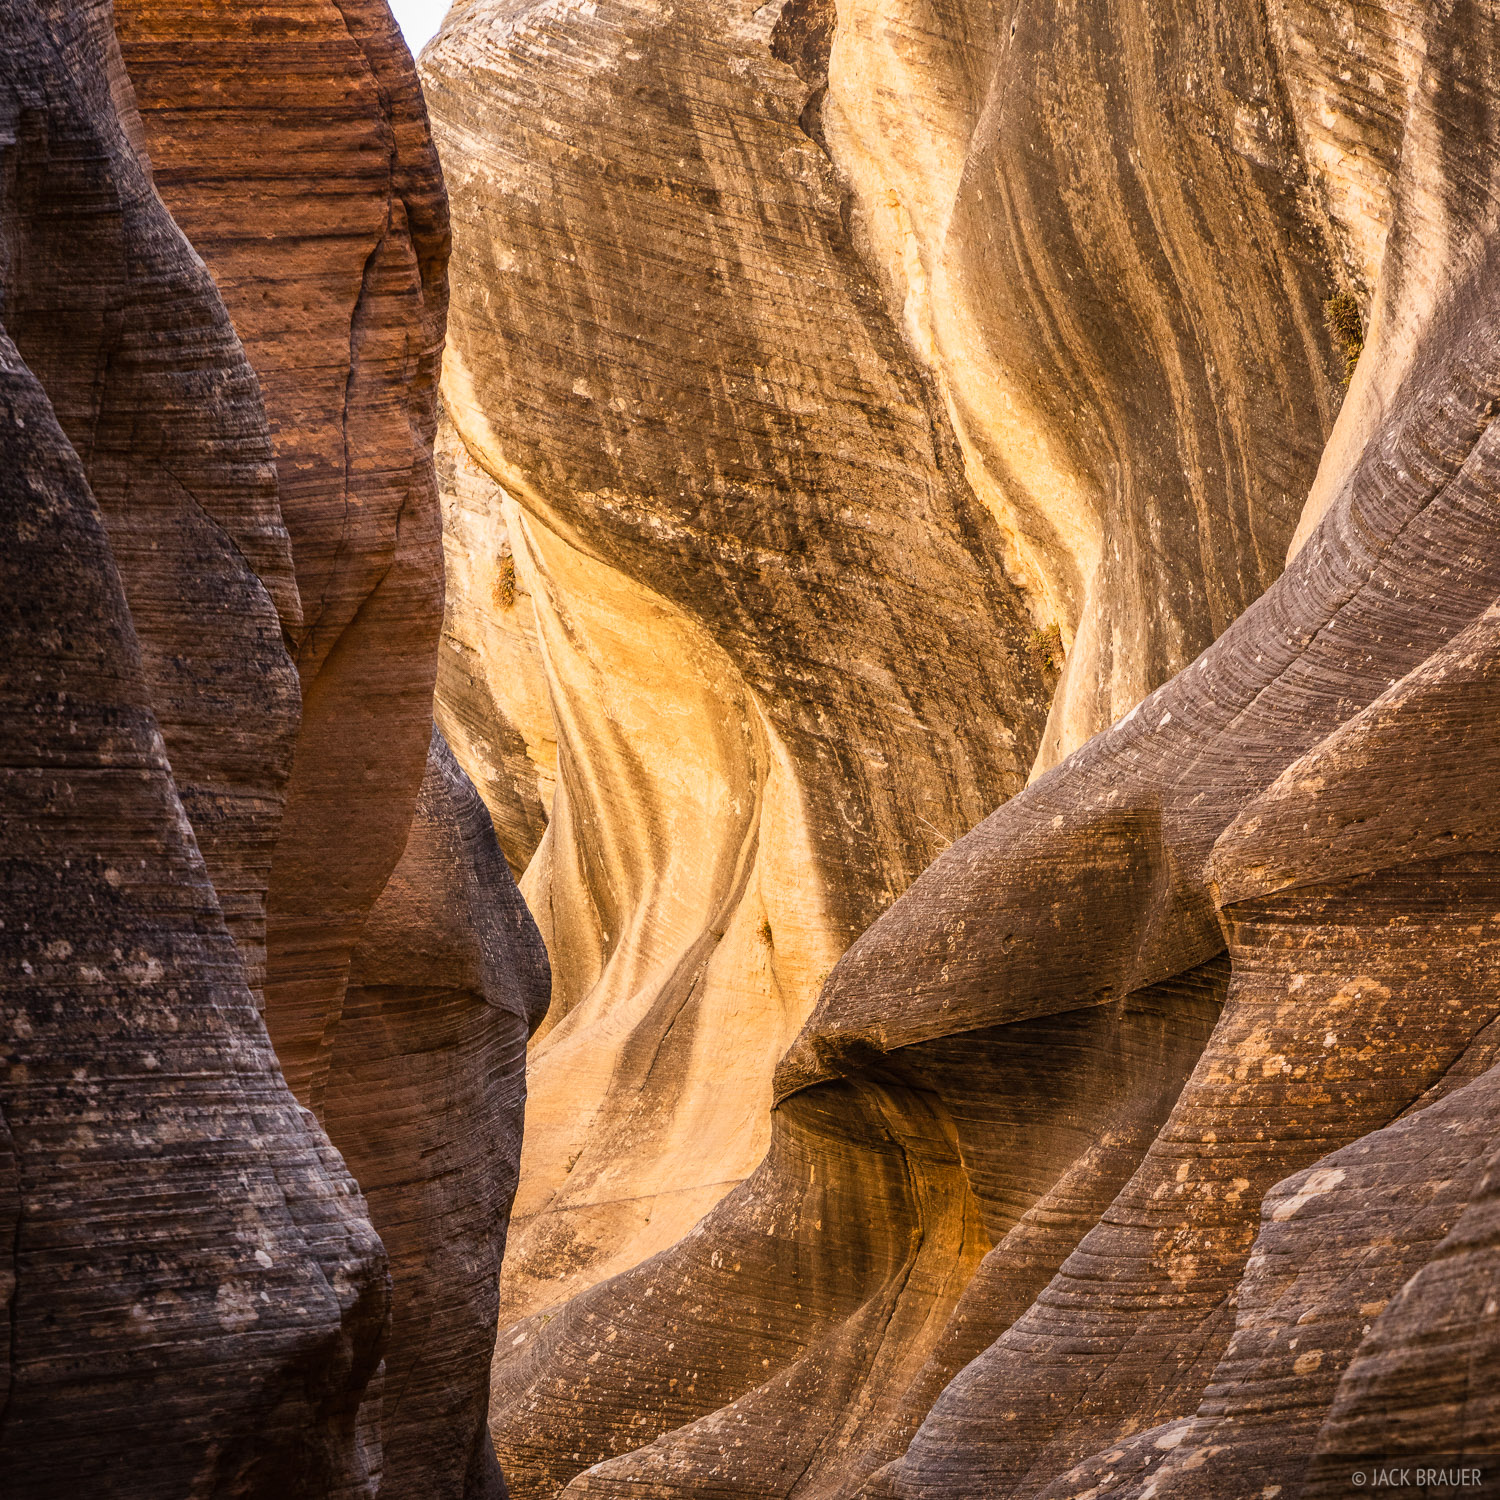 Grand Staircase - Escalante National Monument, Utah, Willis Creek, hiking, photo